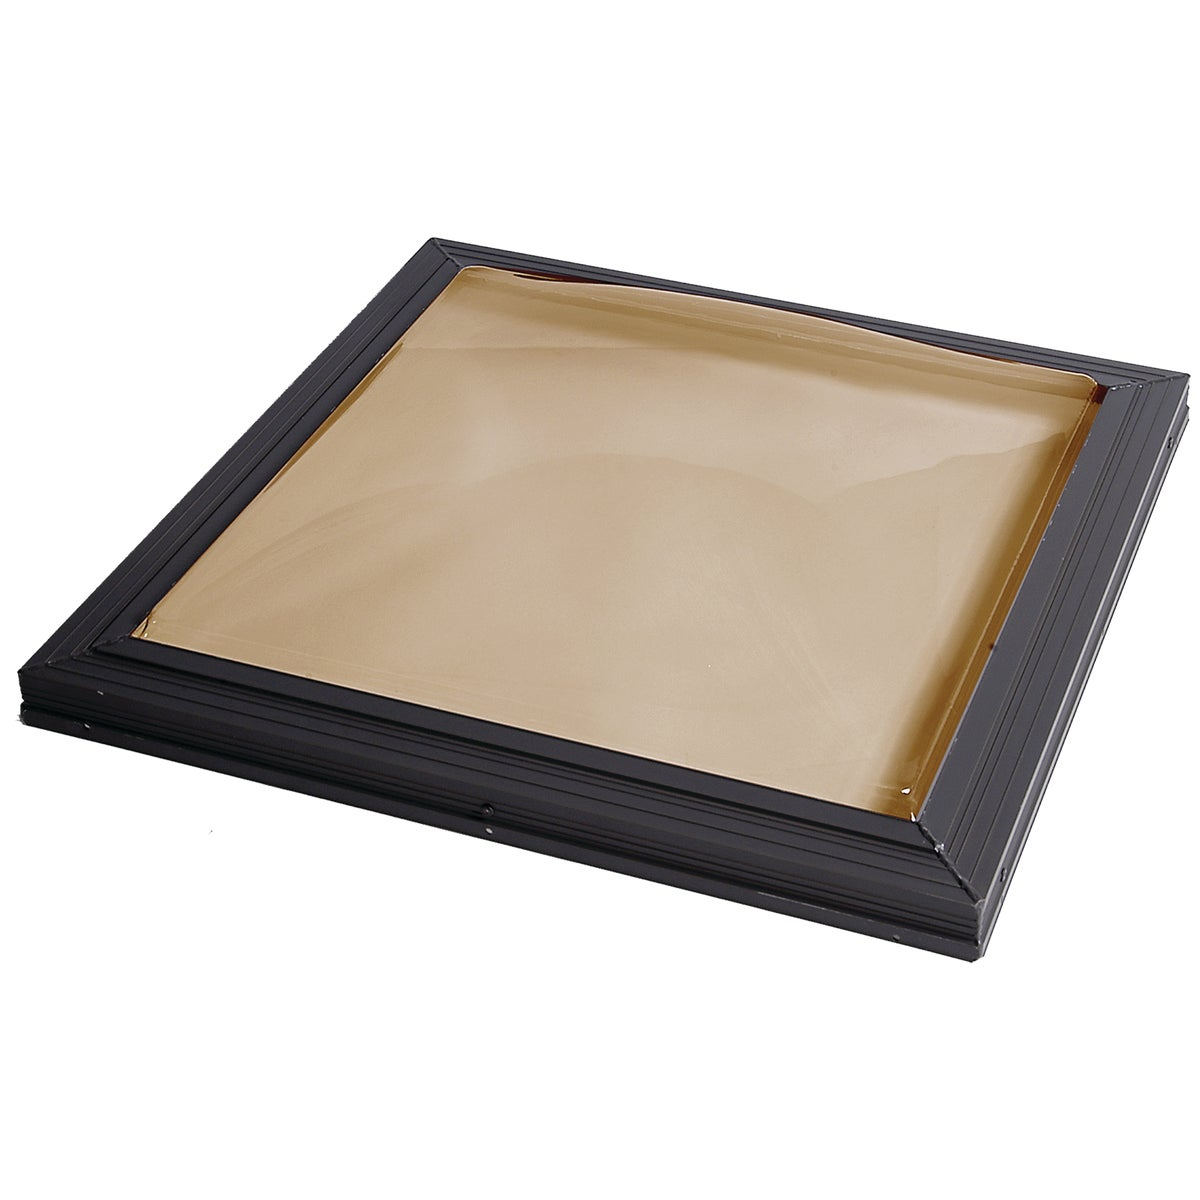 2X2 BRZ DOUBLE SKYLIGHT - CMA2222BCB by Sun Tek Manuf Inc